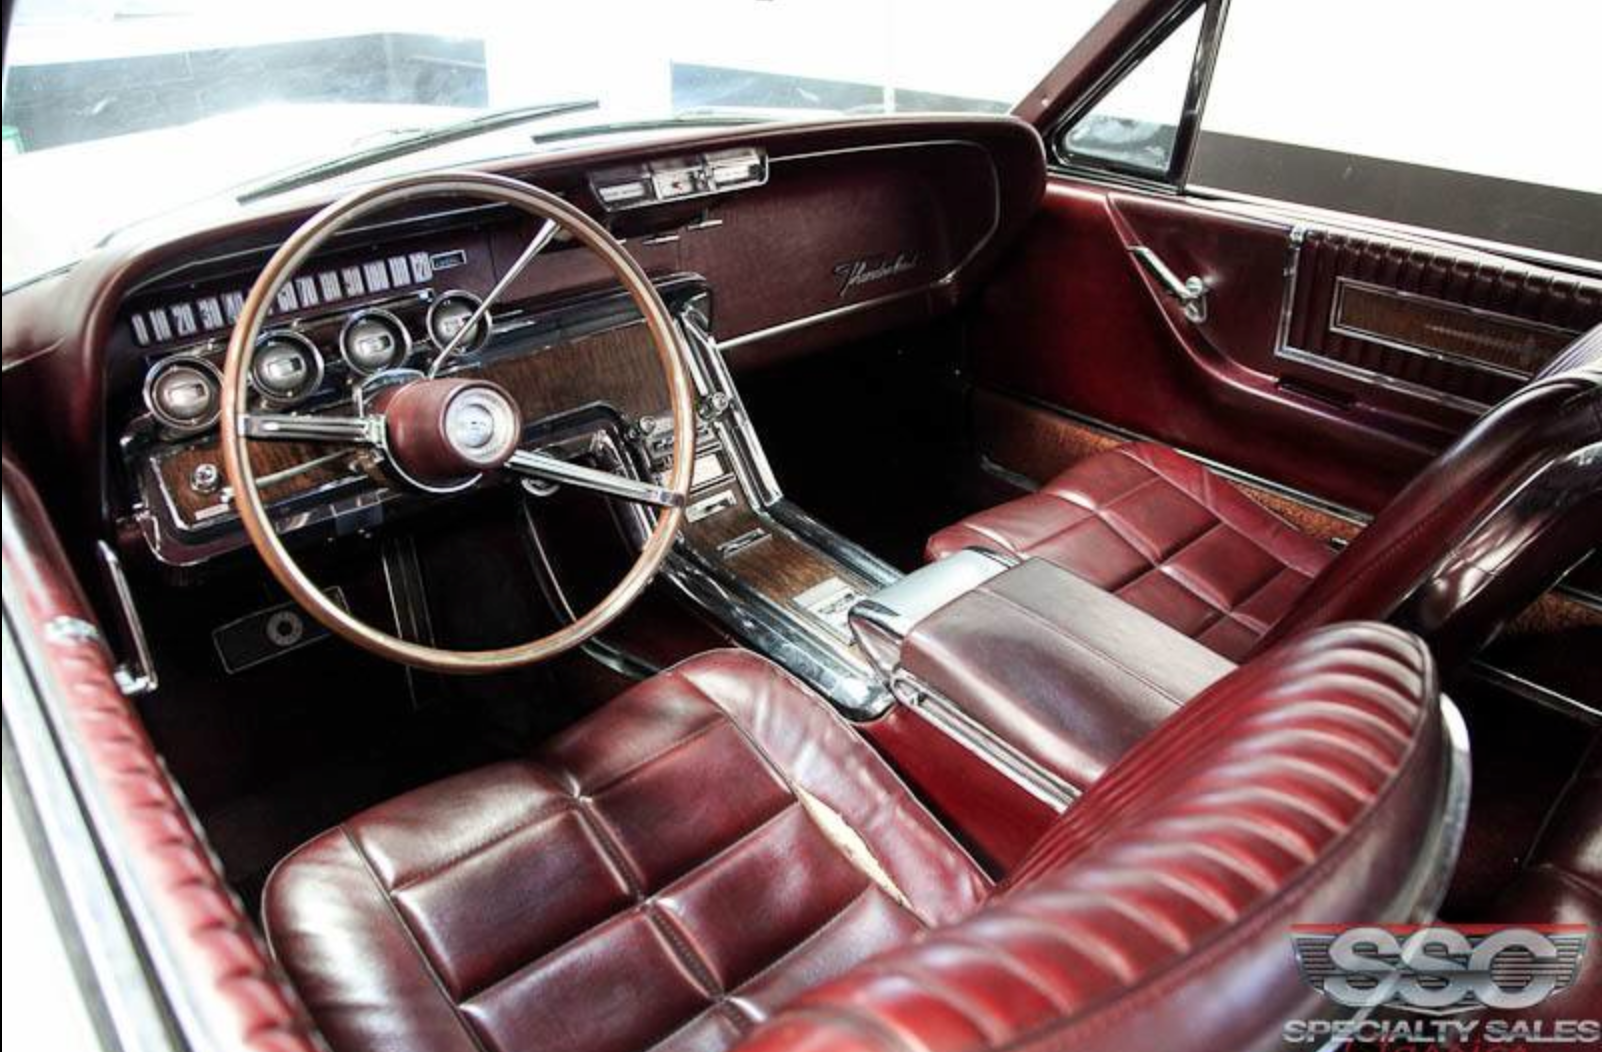 1966 Thunderbird I Typically Don T Like Burgundy Interior But The Patina On The Leather Here Is Nice Li Ford Thunderbird Thunderbird Car Custom Car Interior